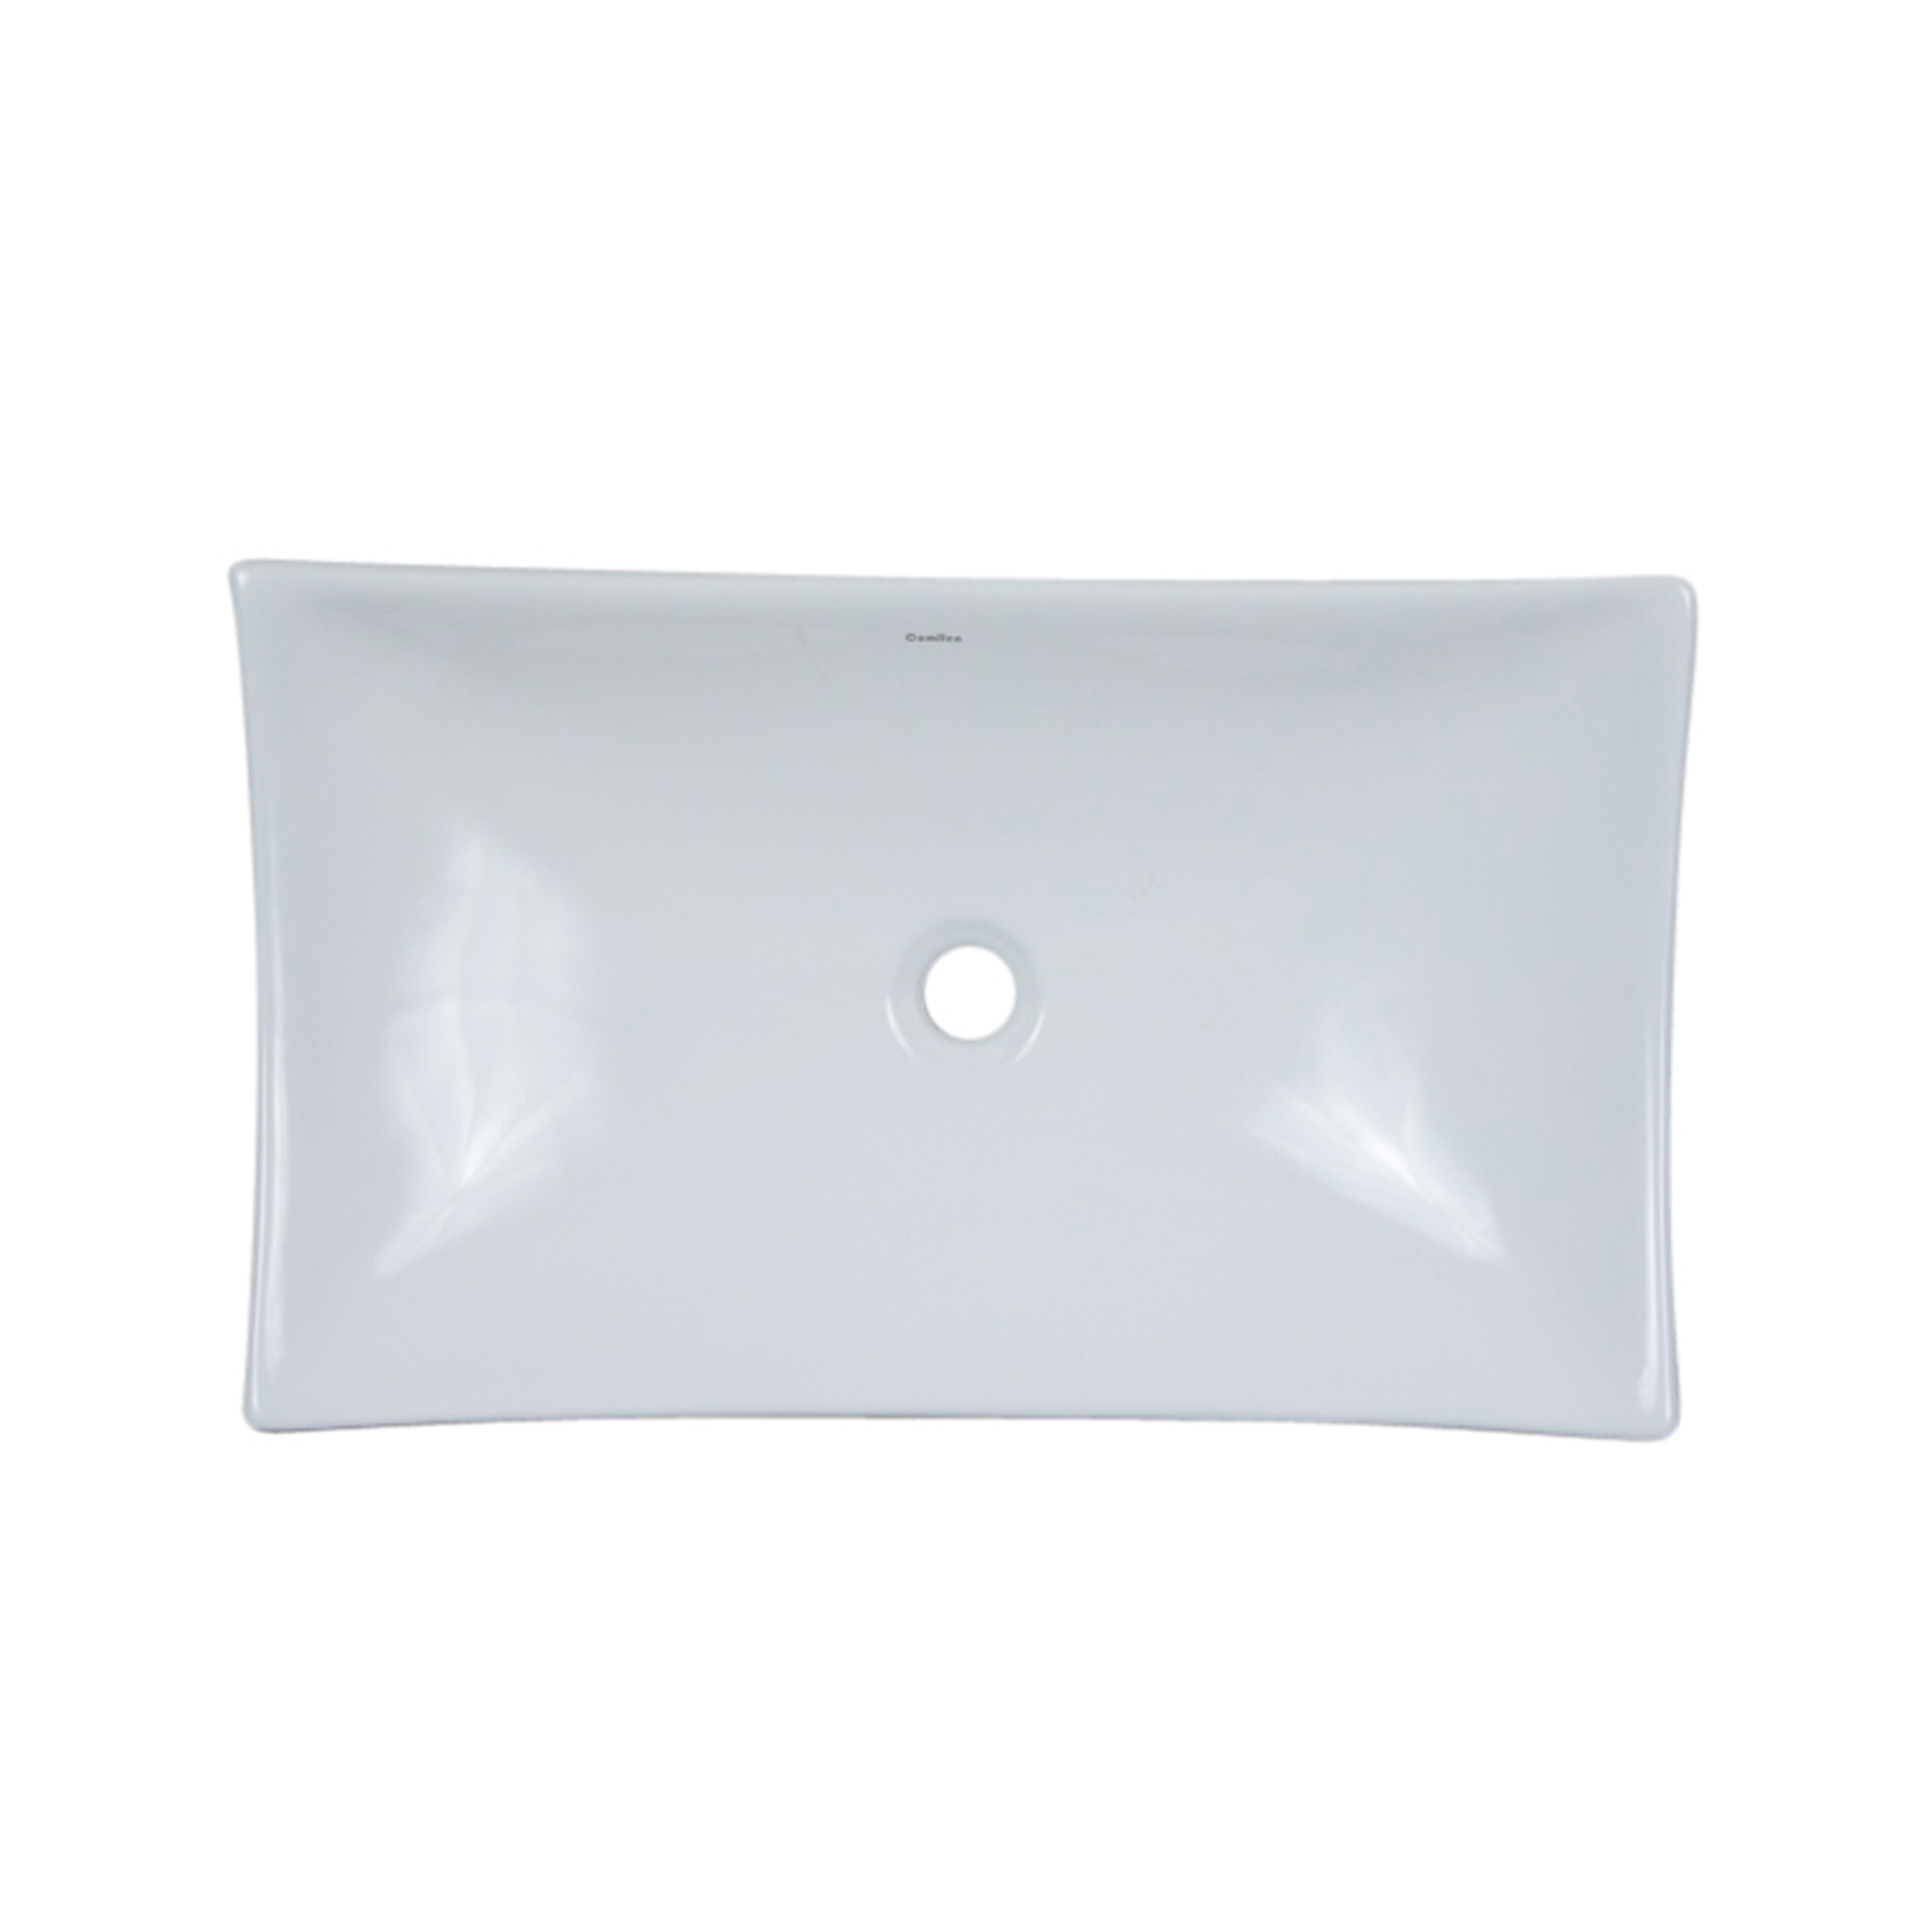 Sinks Online Buy Ceramic Sinks Online Order Ceramic Vessel Sinks For Your